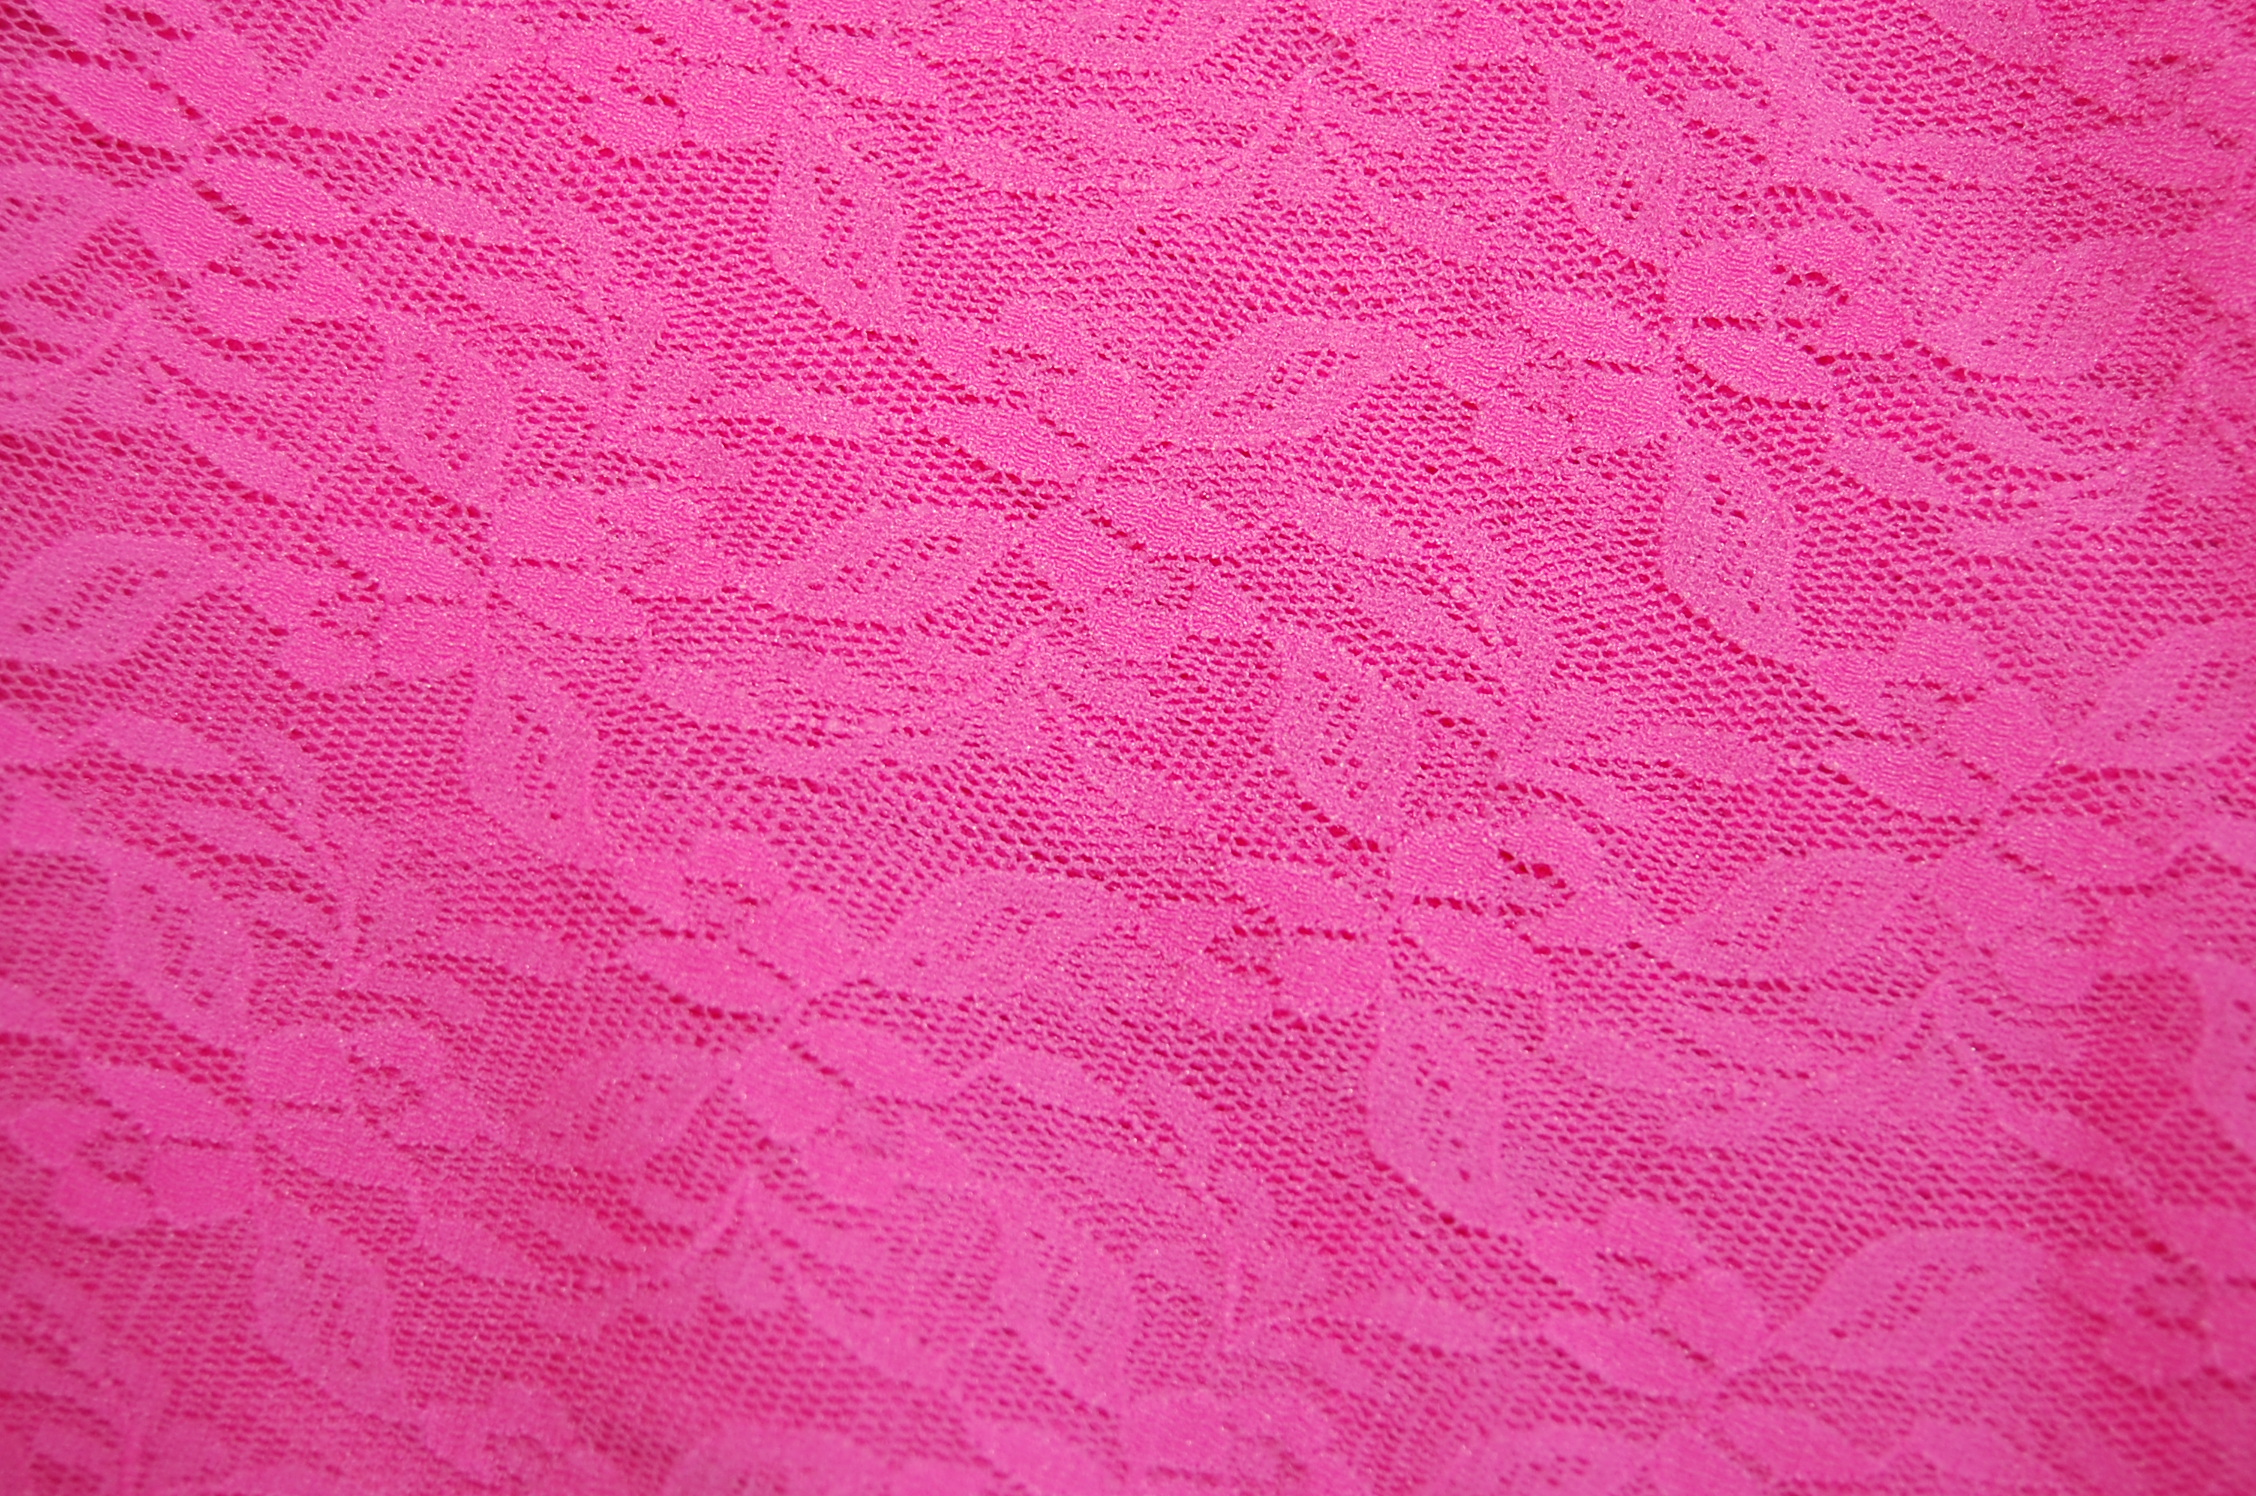 301 moved permanently - Pastel lace wallpaper ...